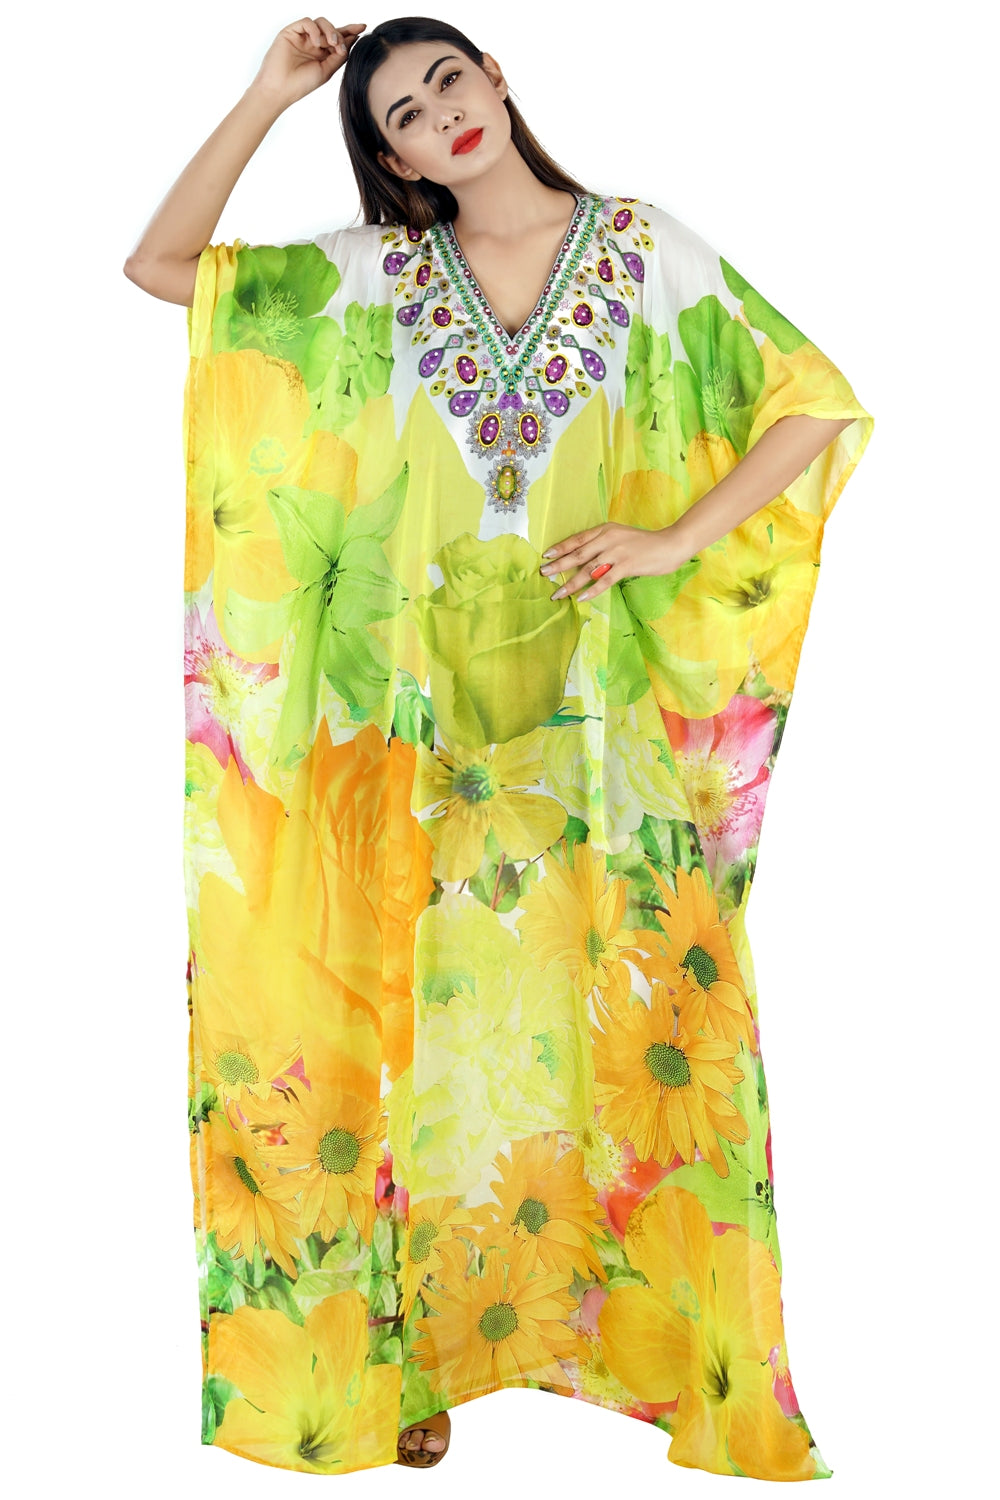 Floral Print kaftan swim wear caftan stunning beach dress silk kaftan maxi dress heavily embellished caftan - Silk kaftan